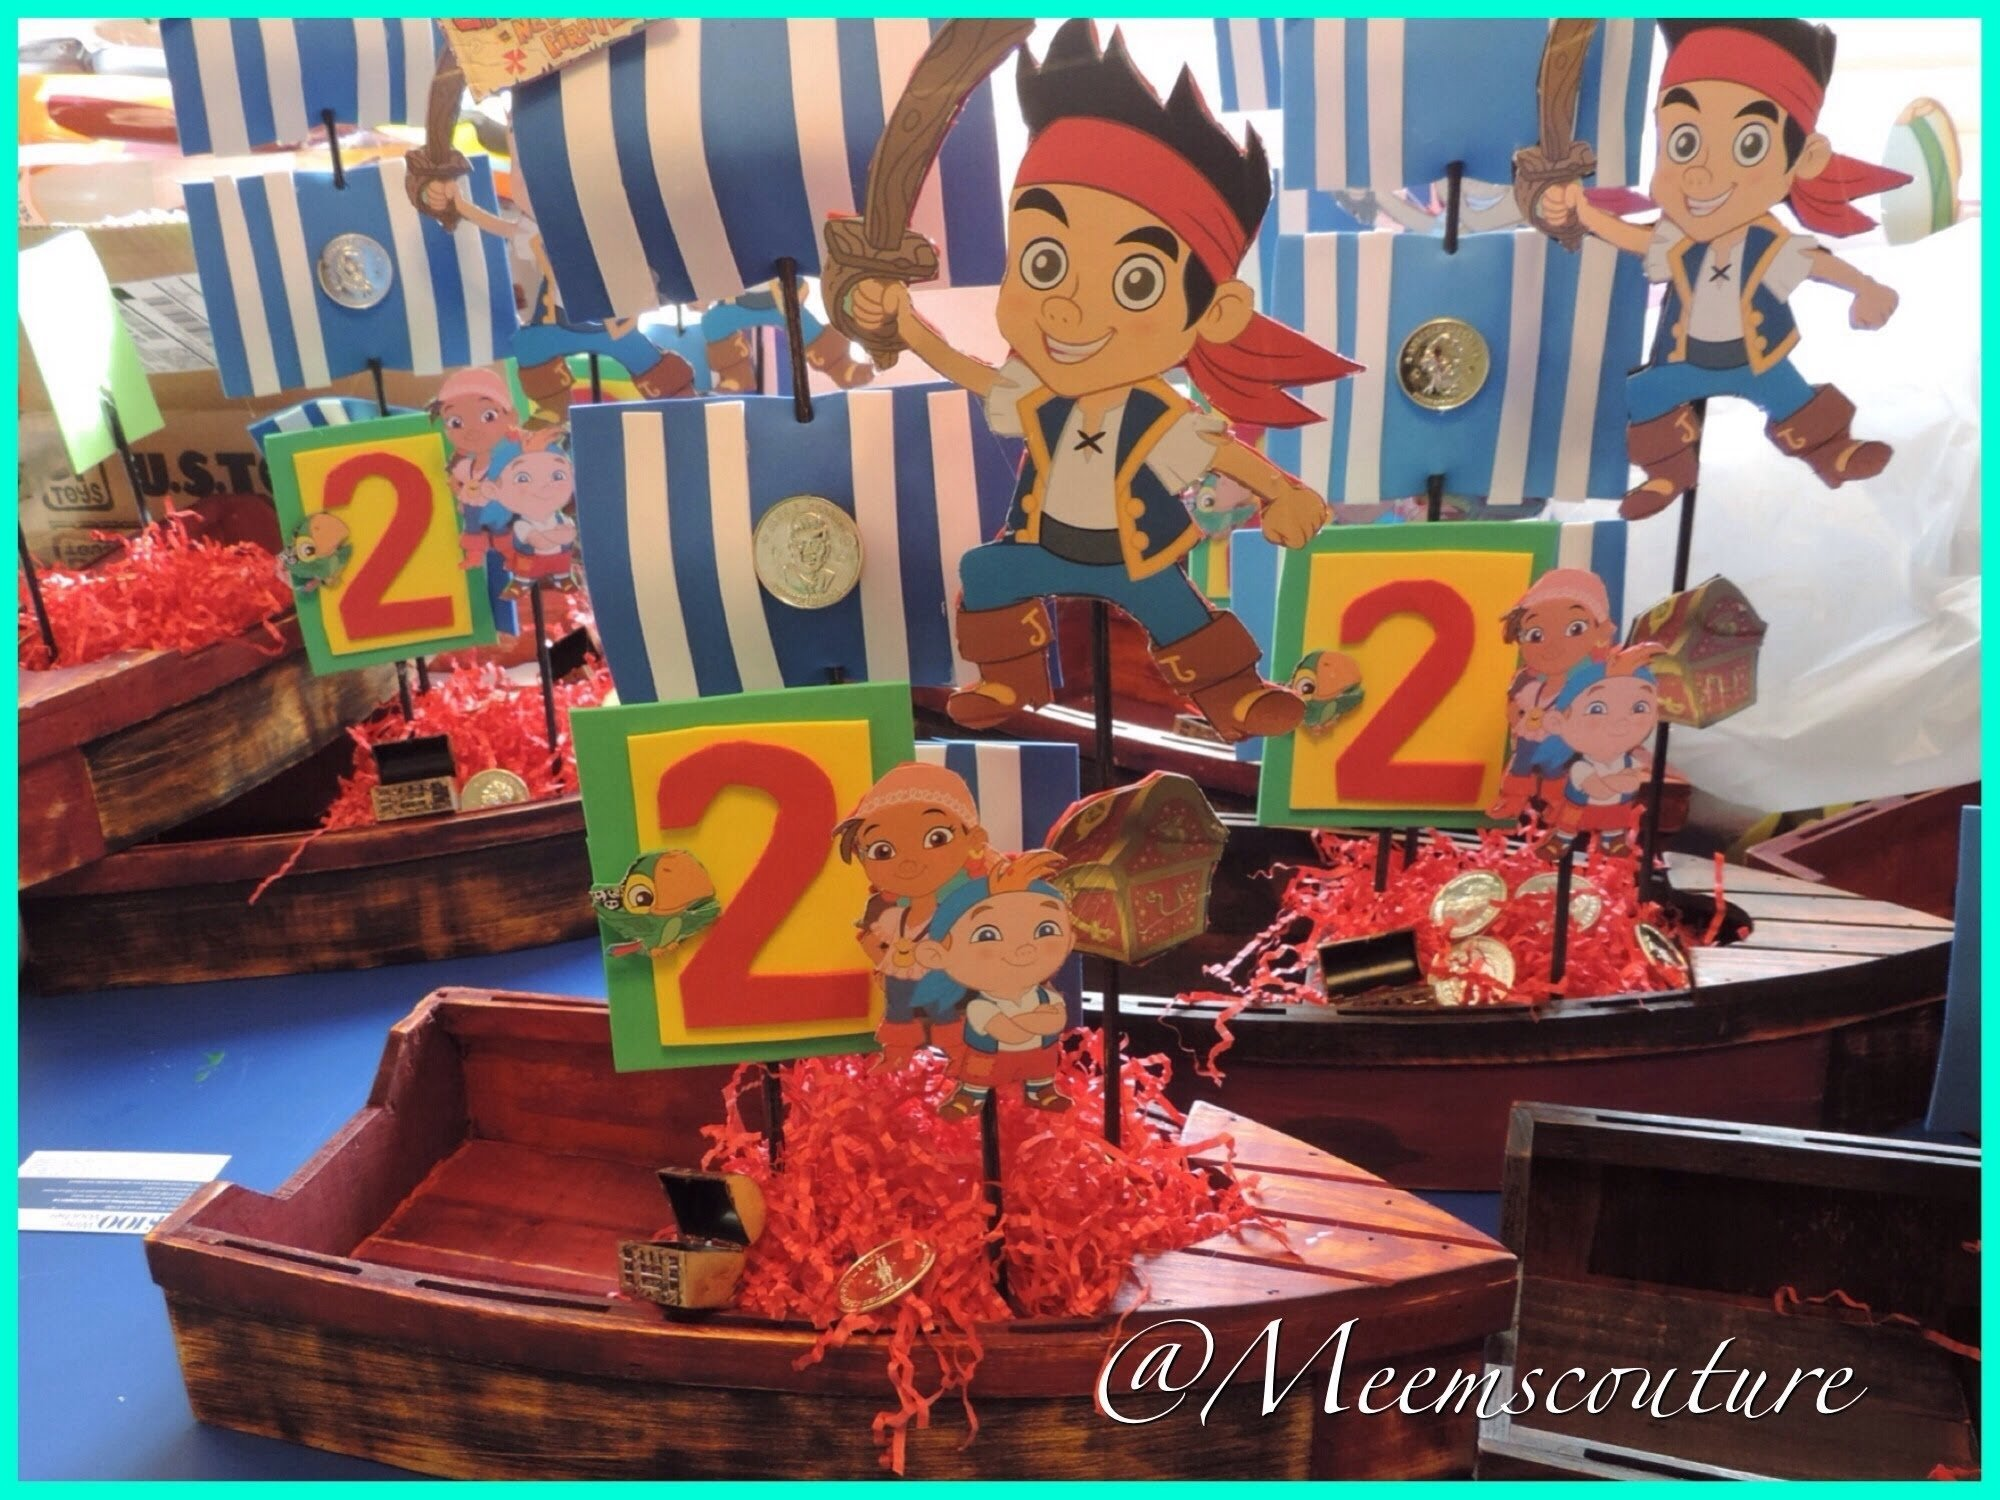 10 Ideal Jake And The Neverland Pirate Birthday Party Ideas diy jake and the neverland pirates party center pieces youtube 5 2020